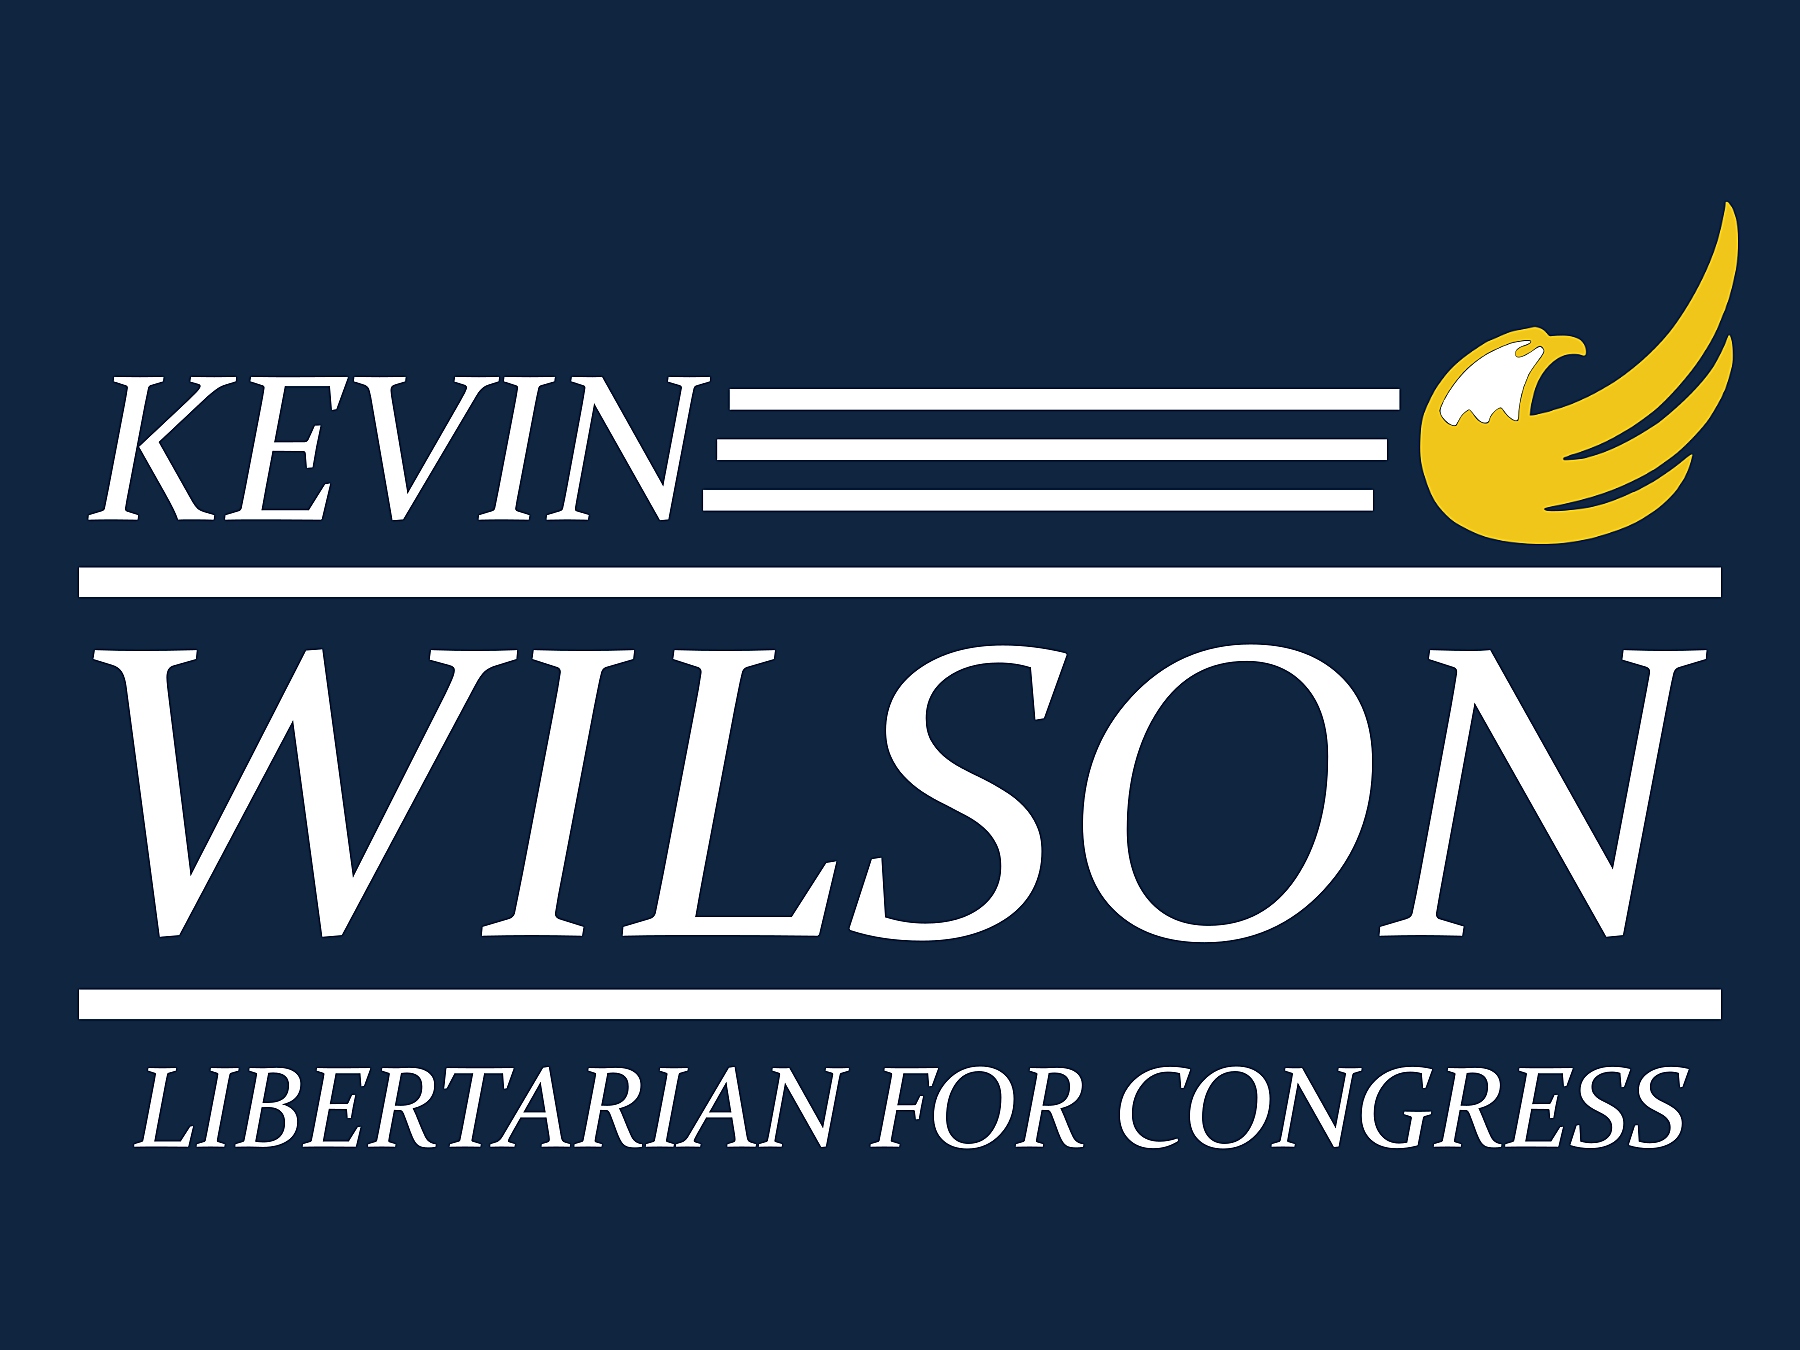 Kevin Wilson for Congress: General Fund